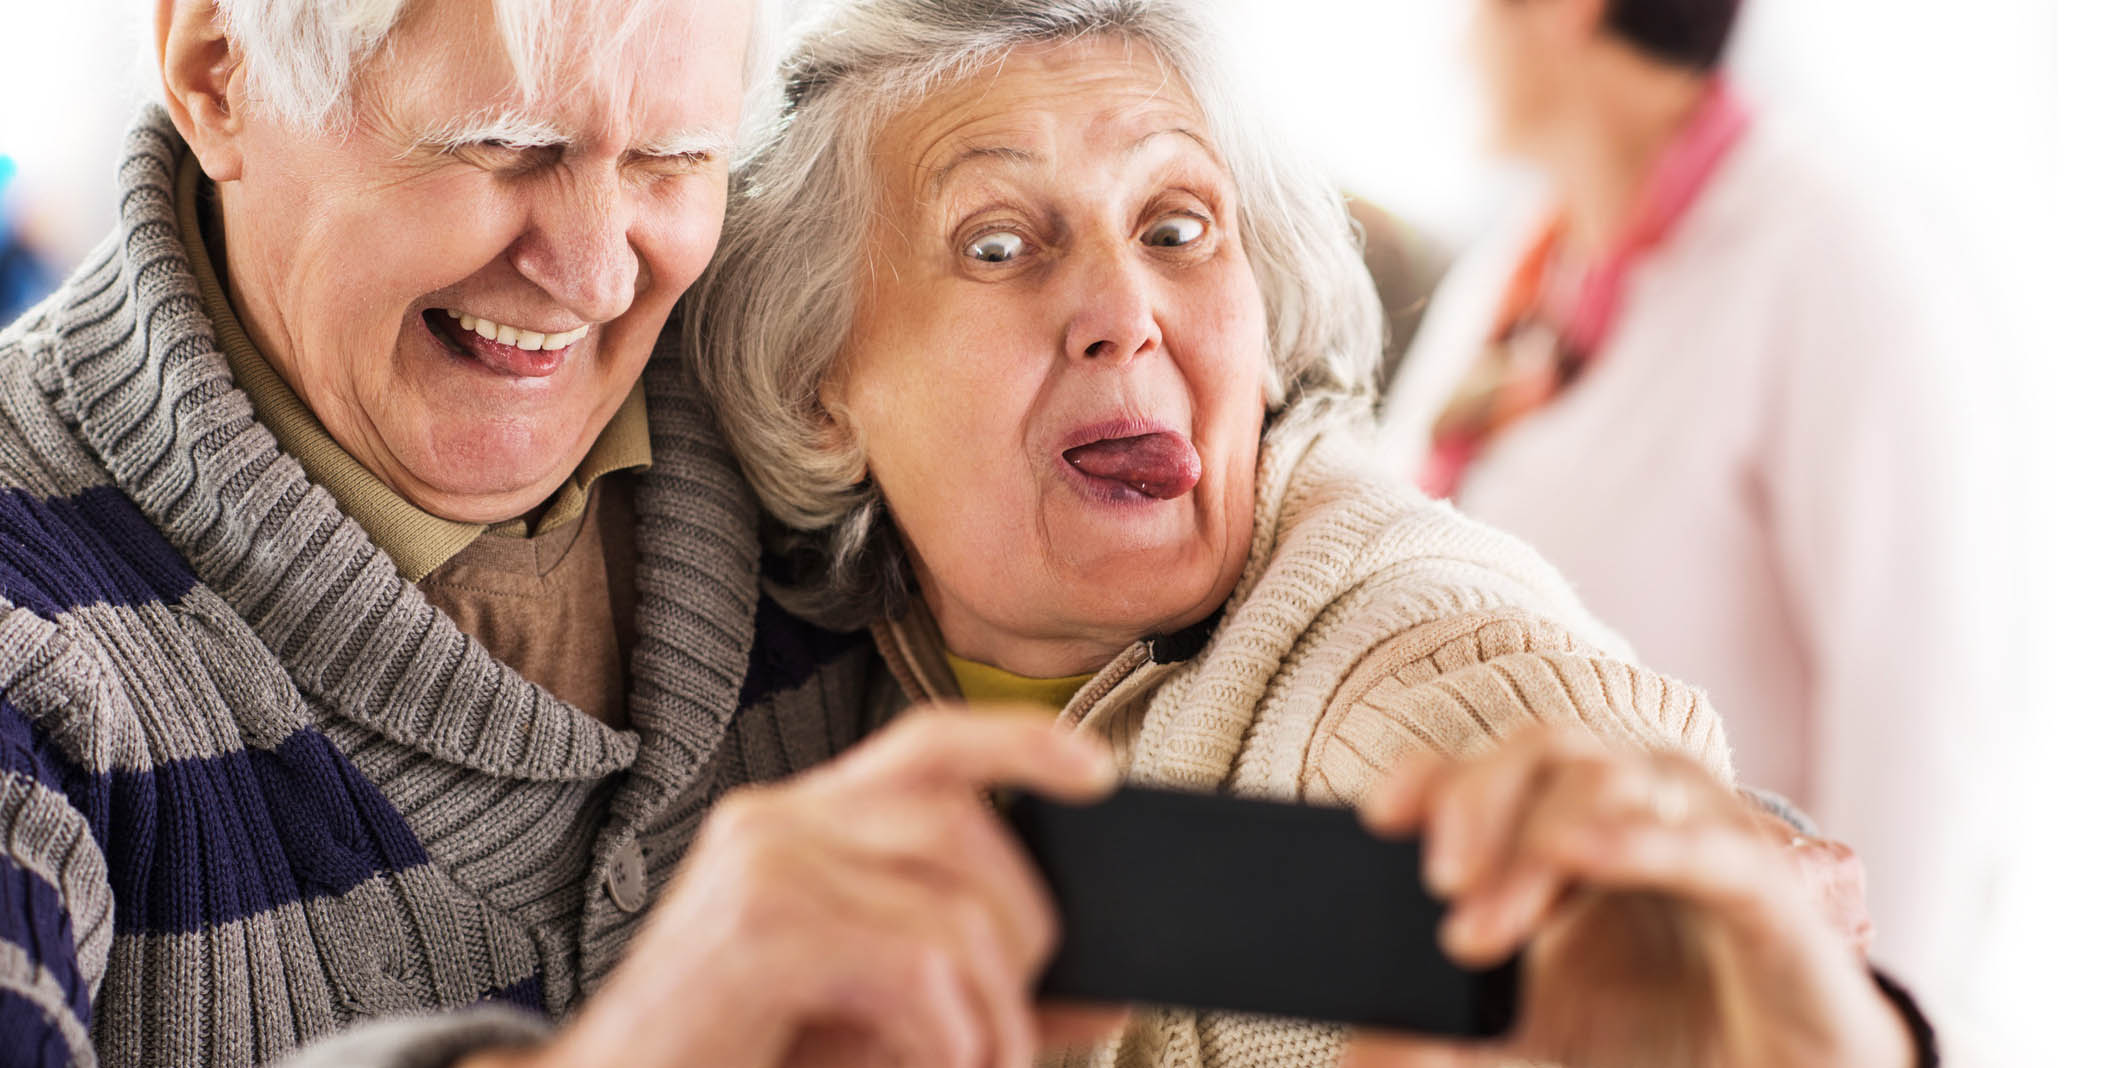 Pew survey finds that the number of seniors who own smartphones has doubled since 2013